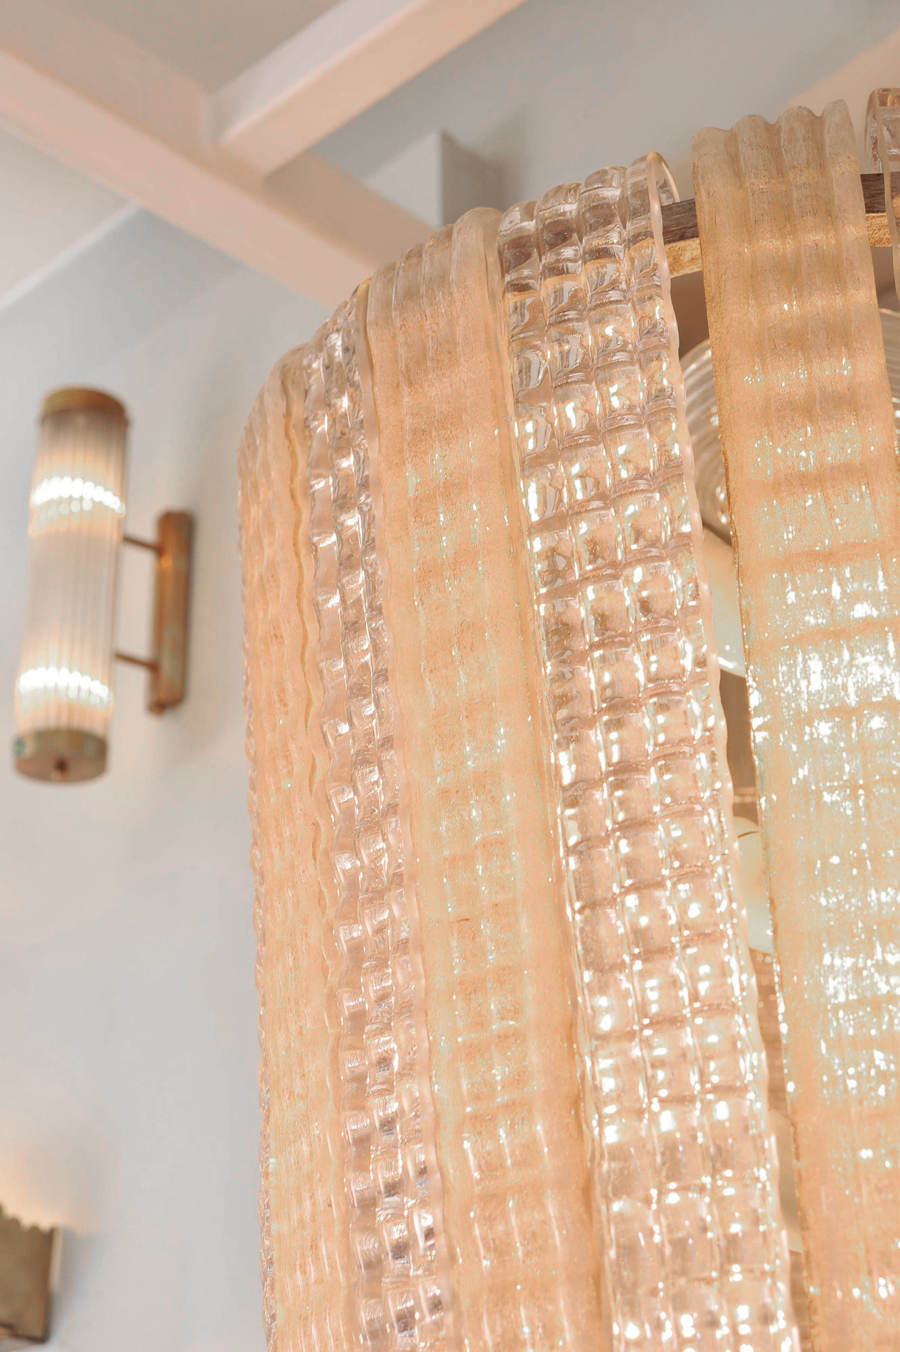 The image for Valerie Wade Lc631 1950S Italian Pink Glass Chandelier 03